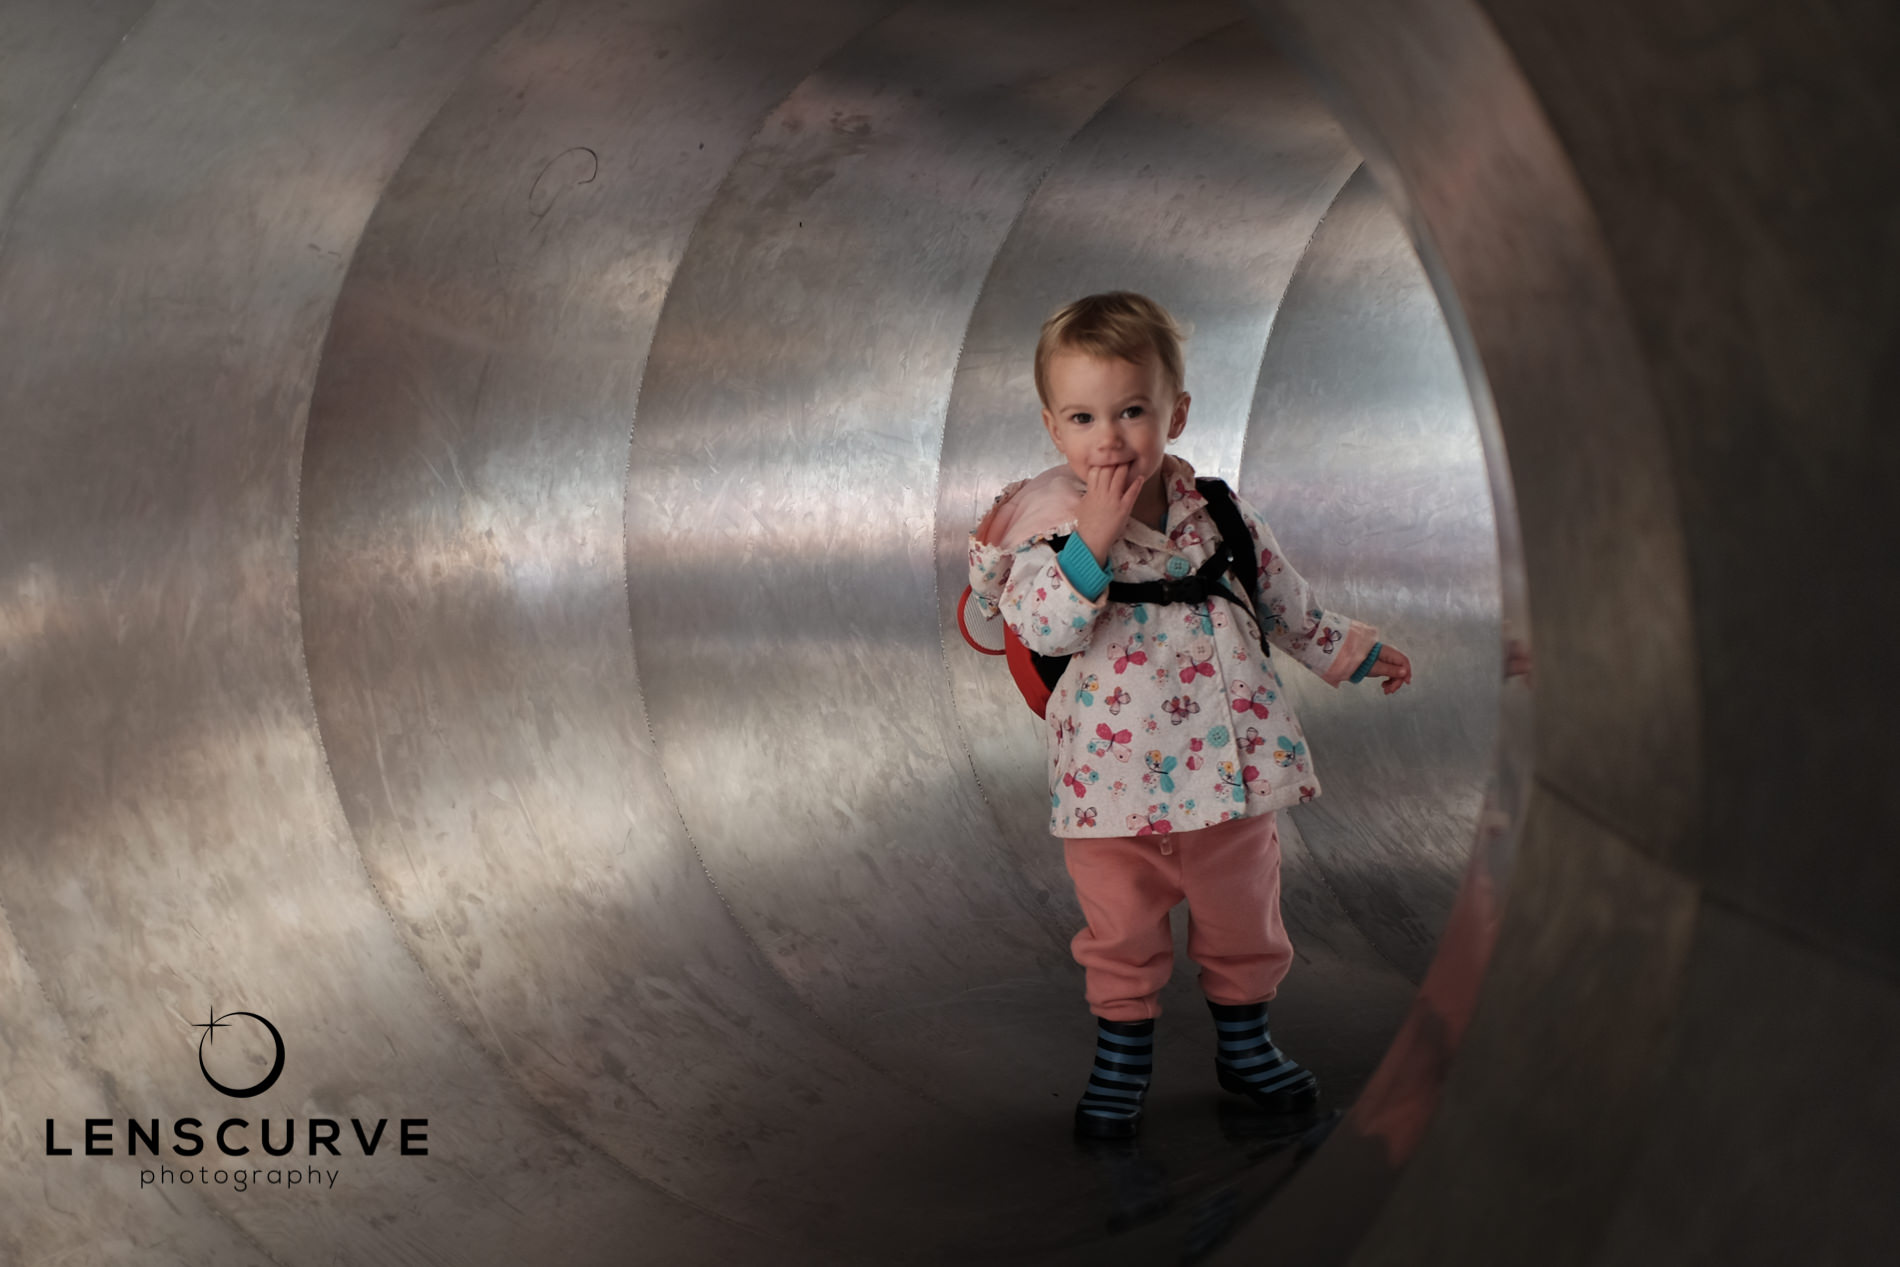 Photograph of a smiling toddler in a metal tunnel in a playpark